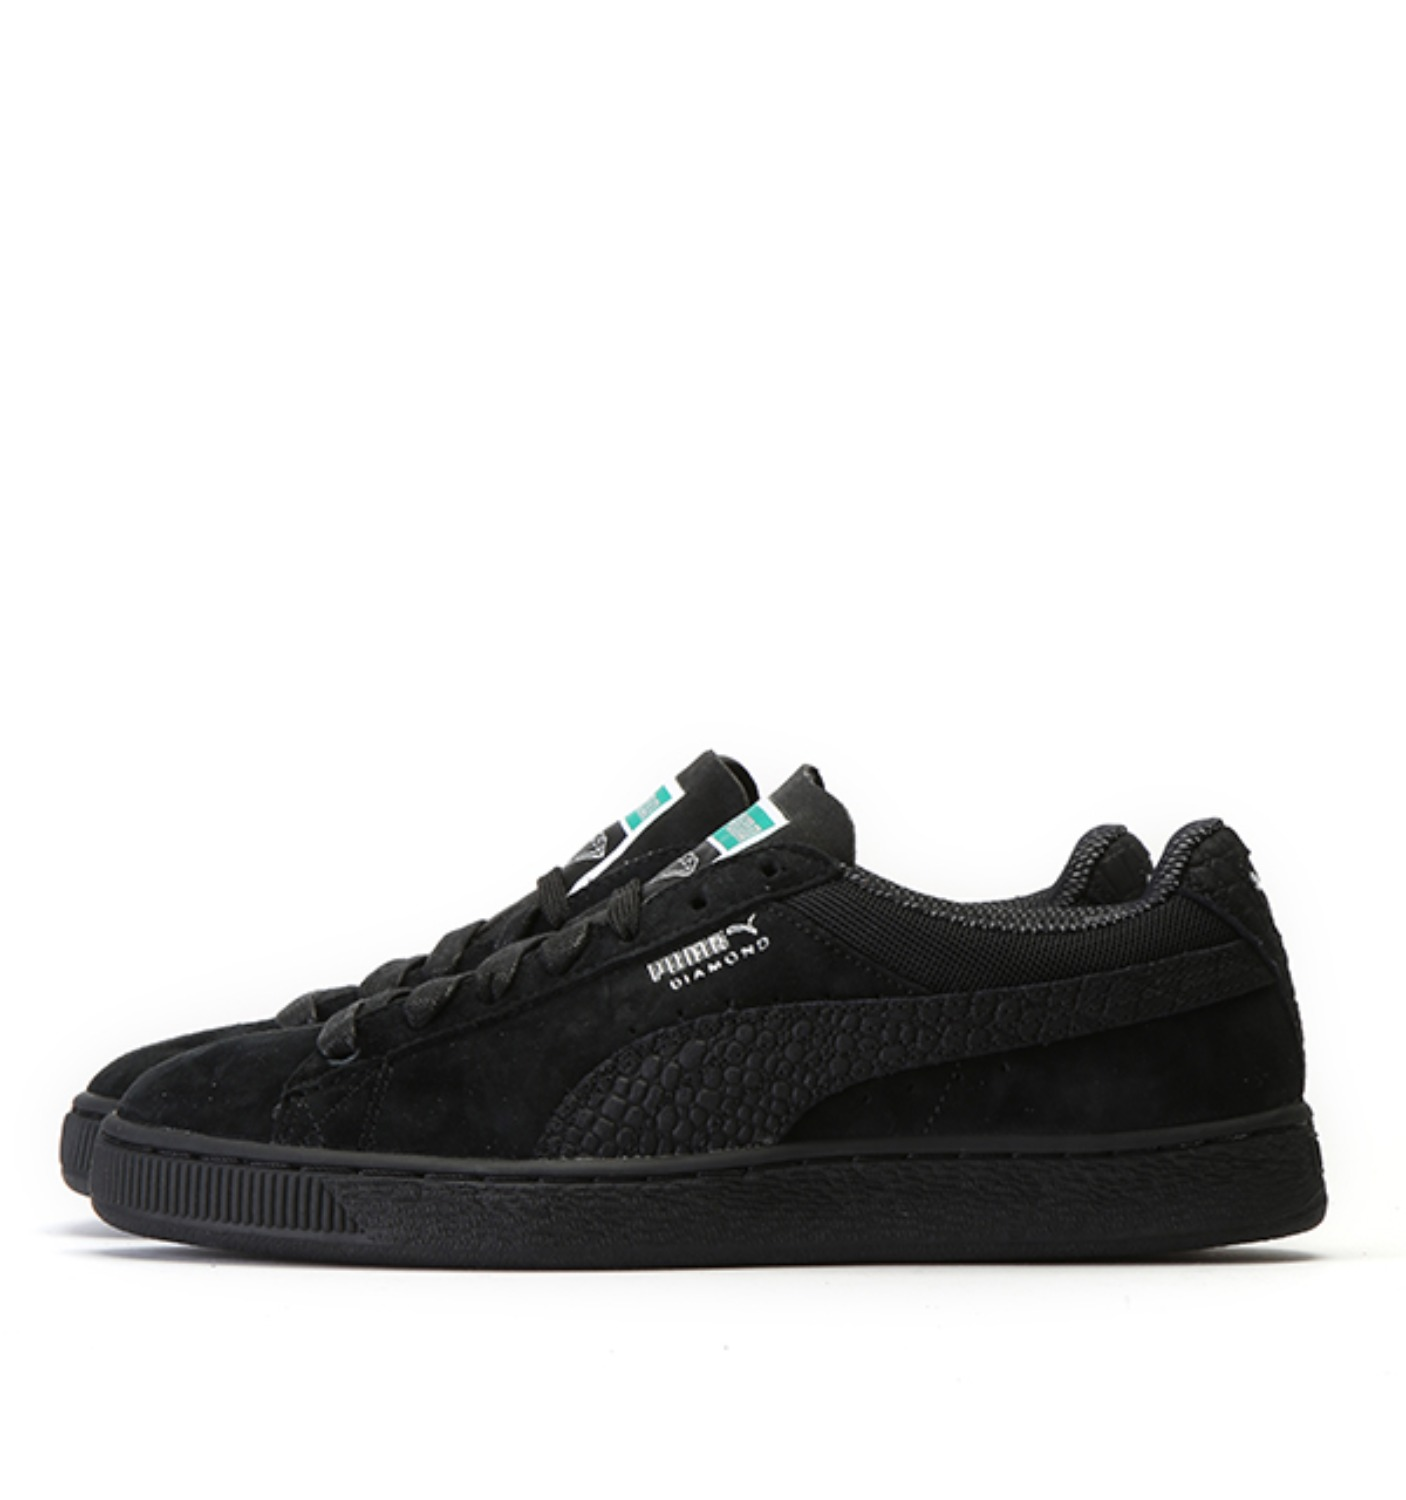 CLASSIC X DIAMOND SUPPLY PUMA BLACK(36300)